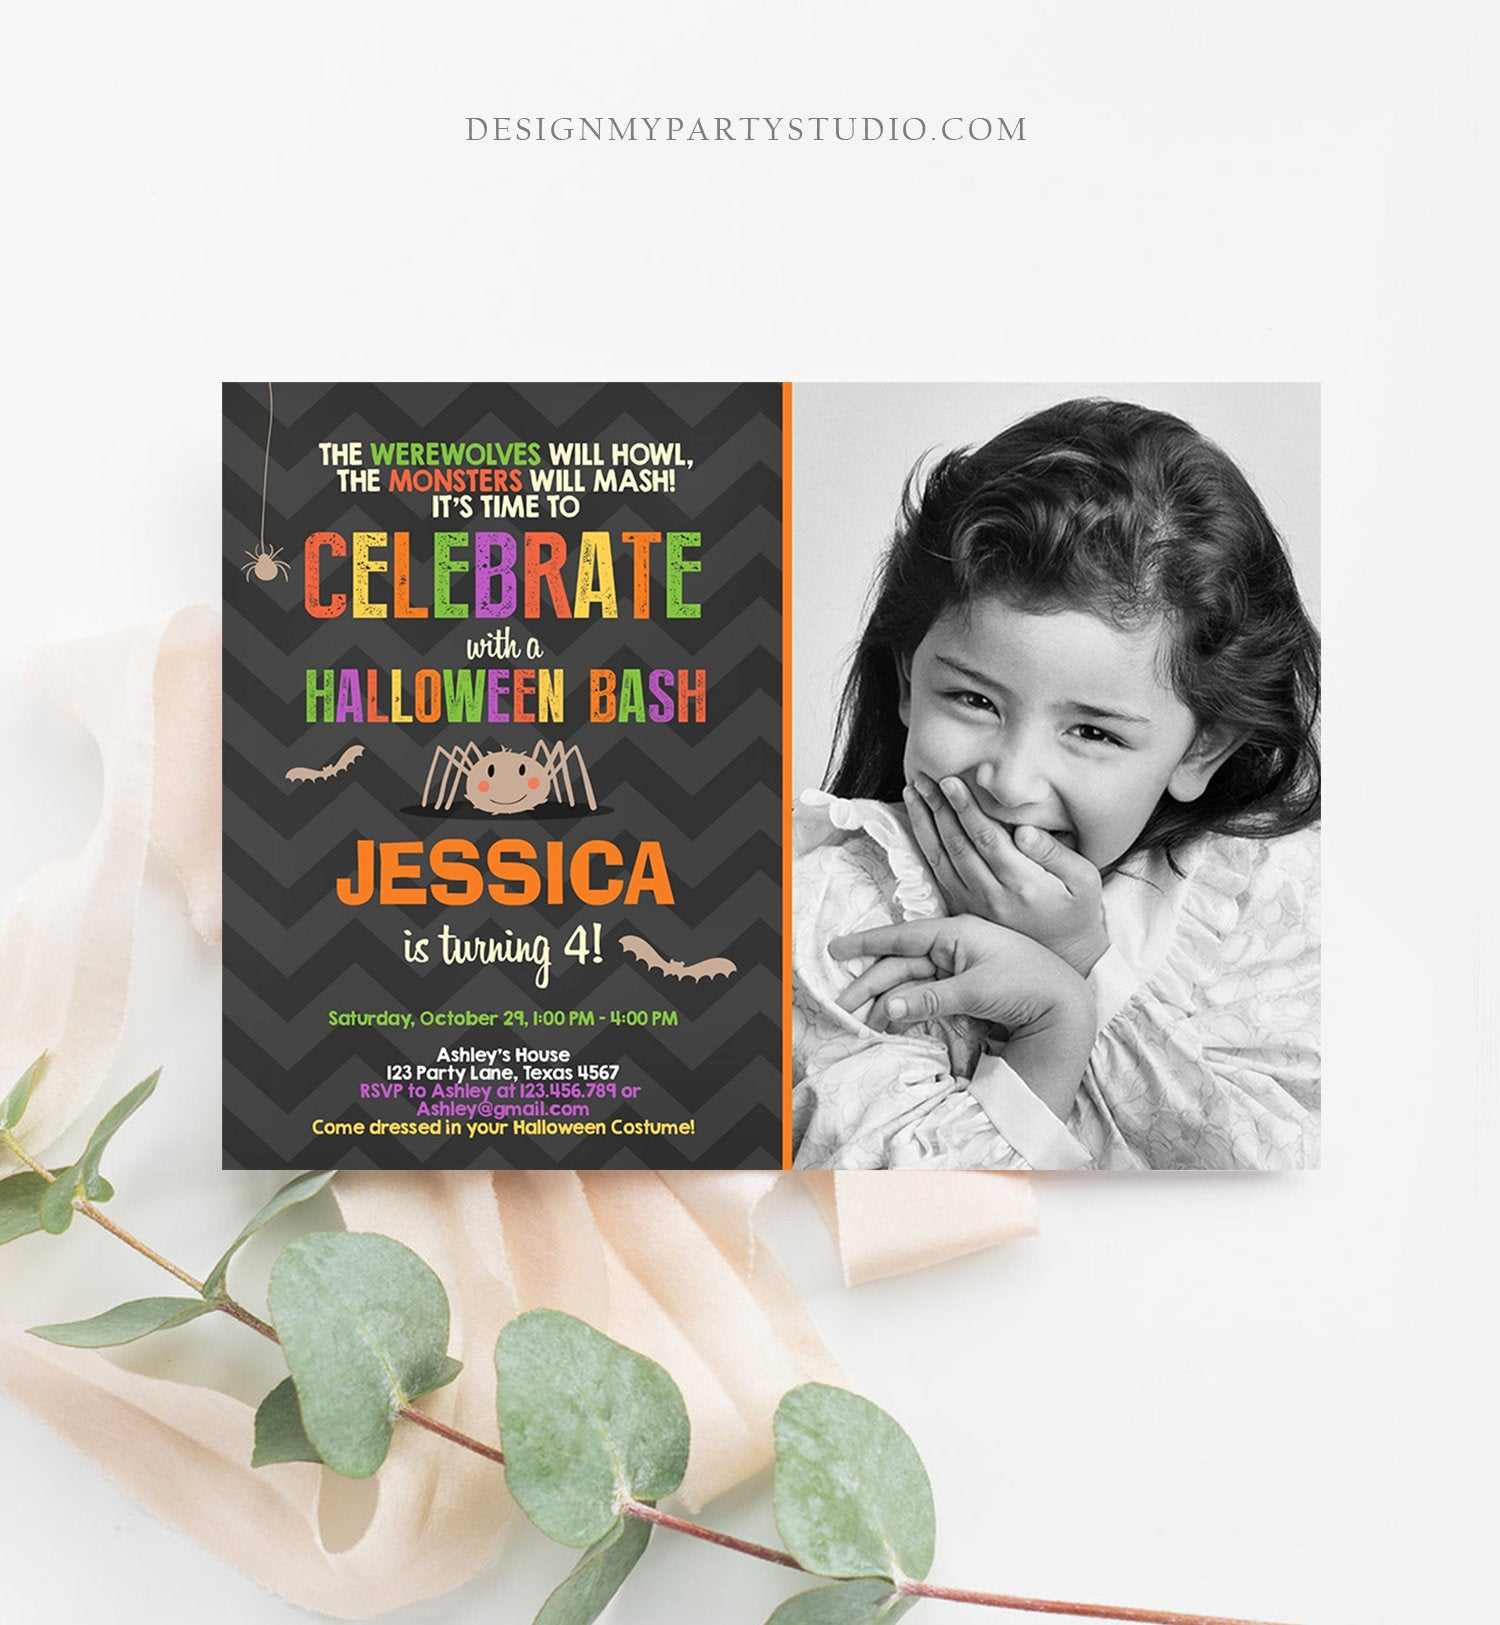 Editable Halloween Birthday Invitation Costume Party Spider Girl Download Printable Invite Template Editable Corjl Digital 0257